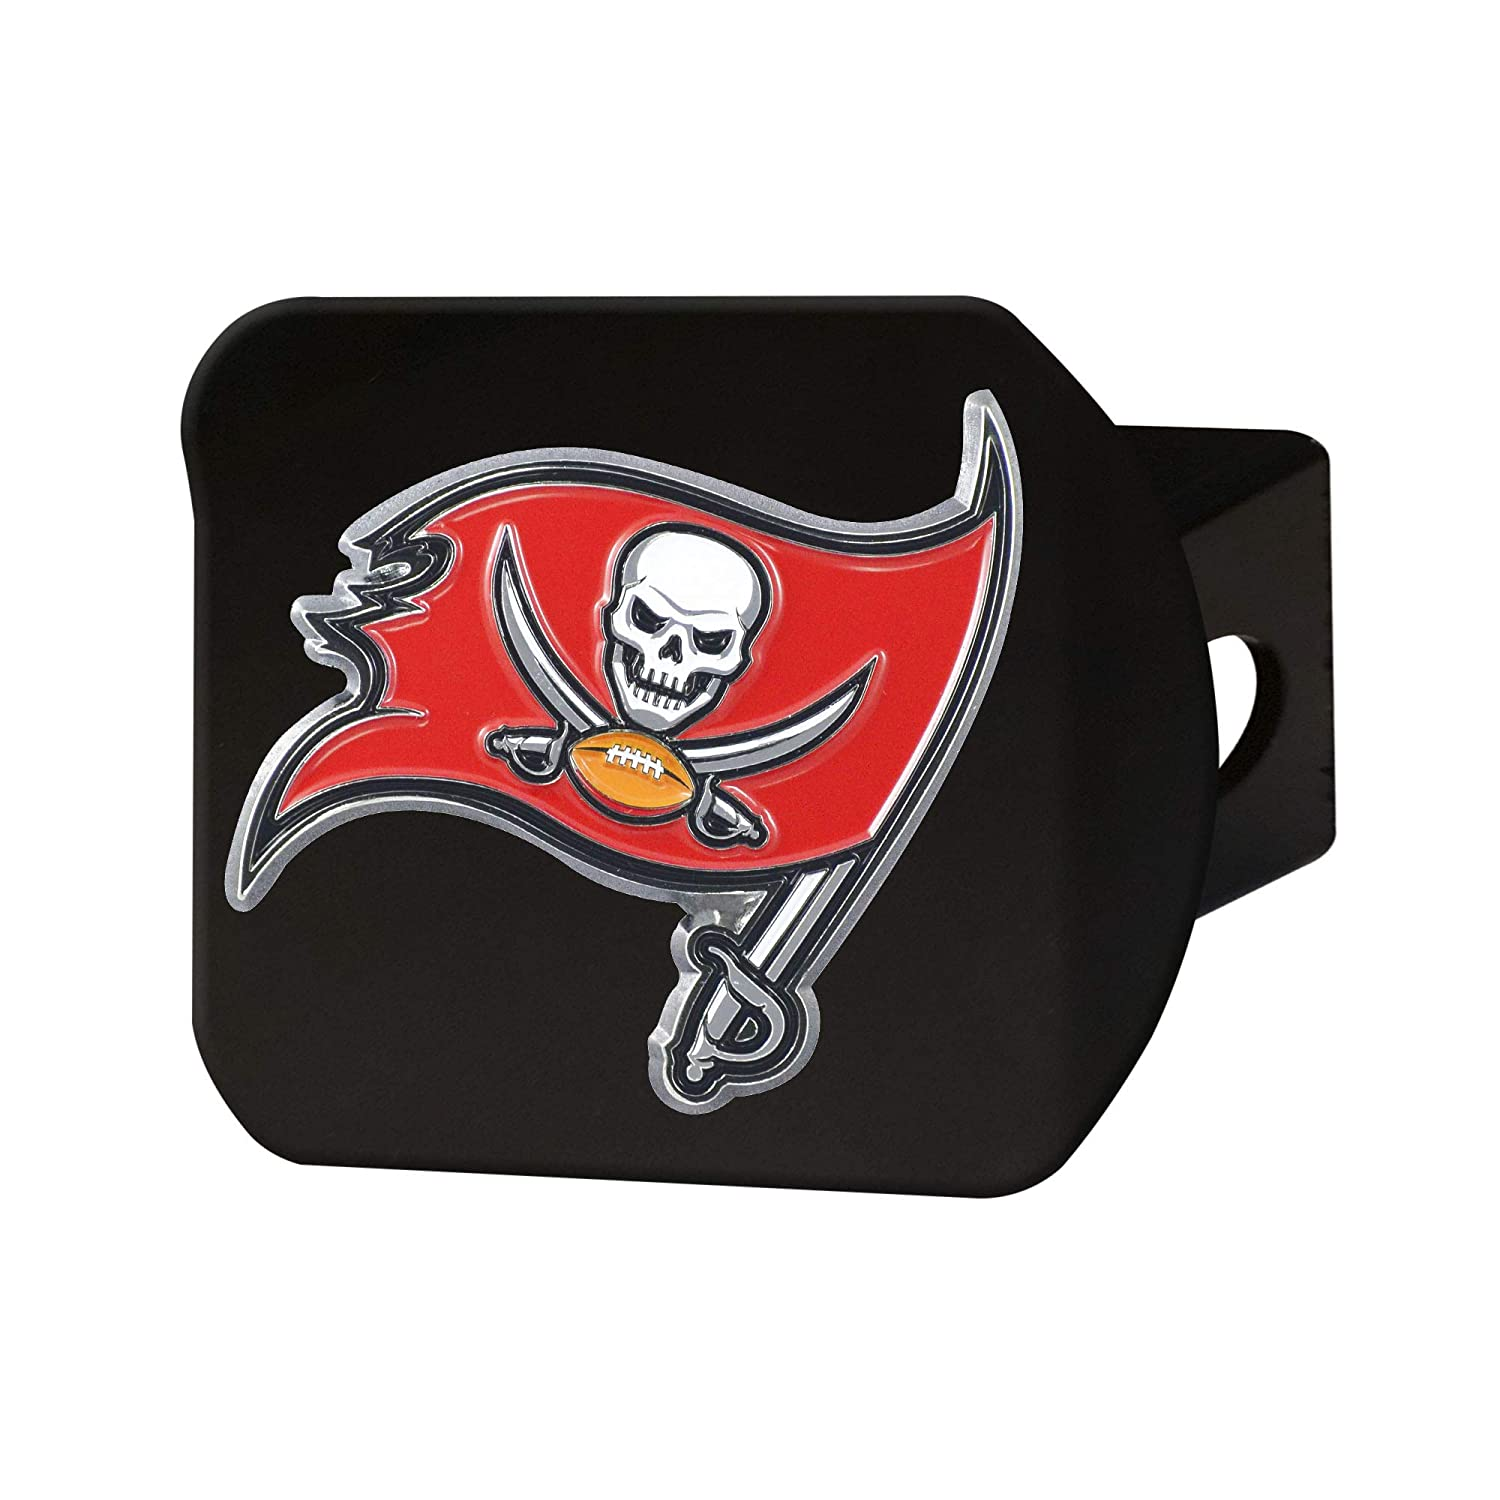 FANMATS 22616 Black 2 Square Type III Hitch Cover